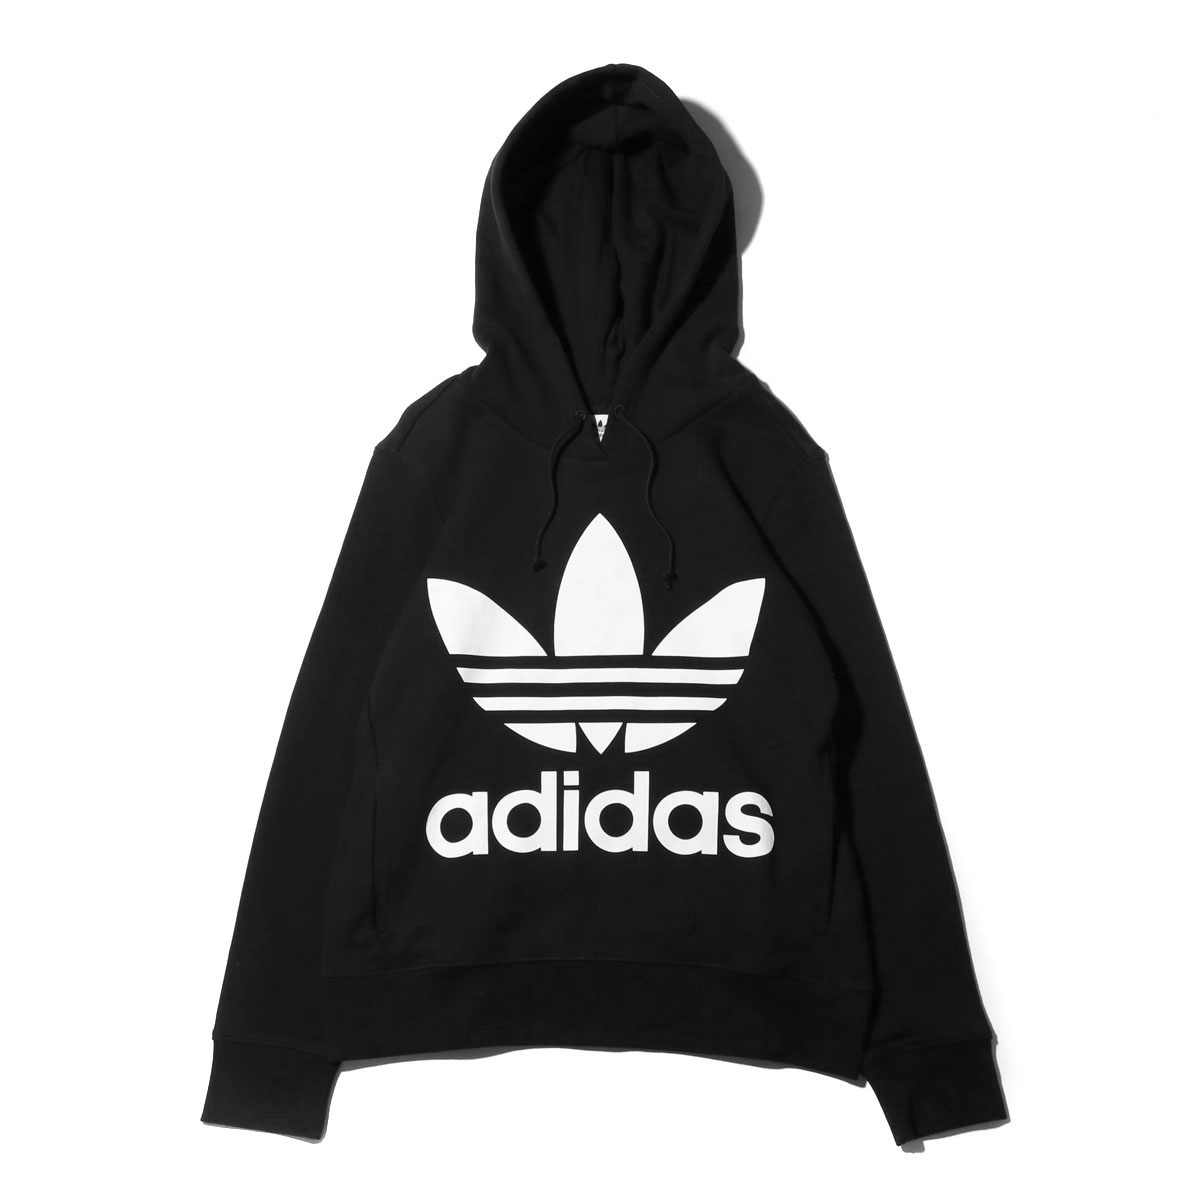 adidas black and white trefoil hoodie